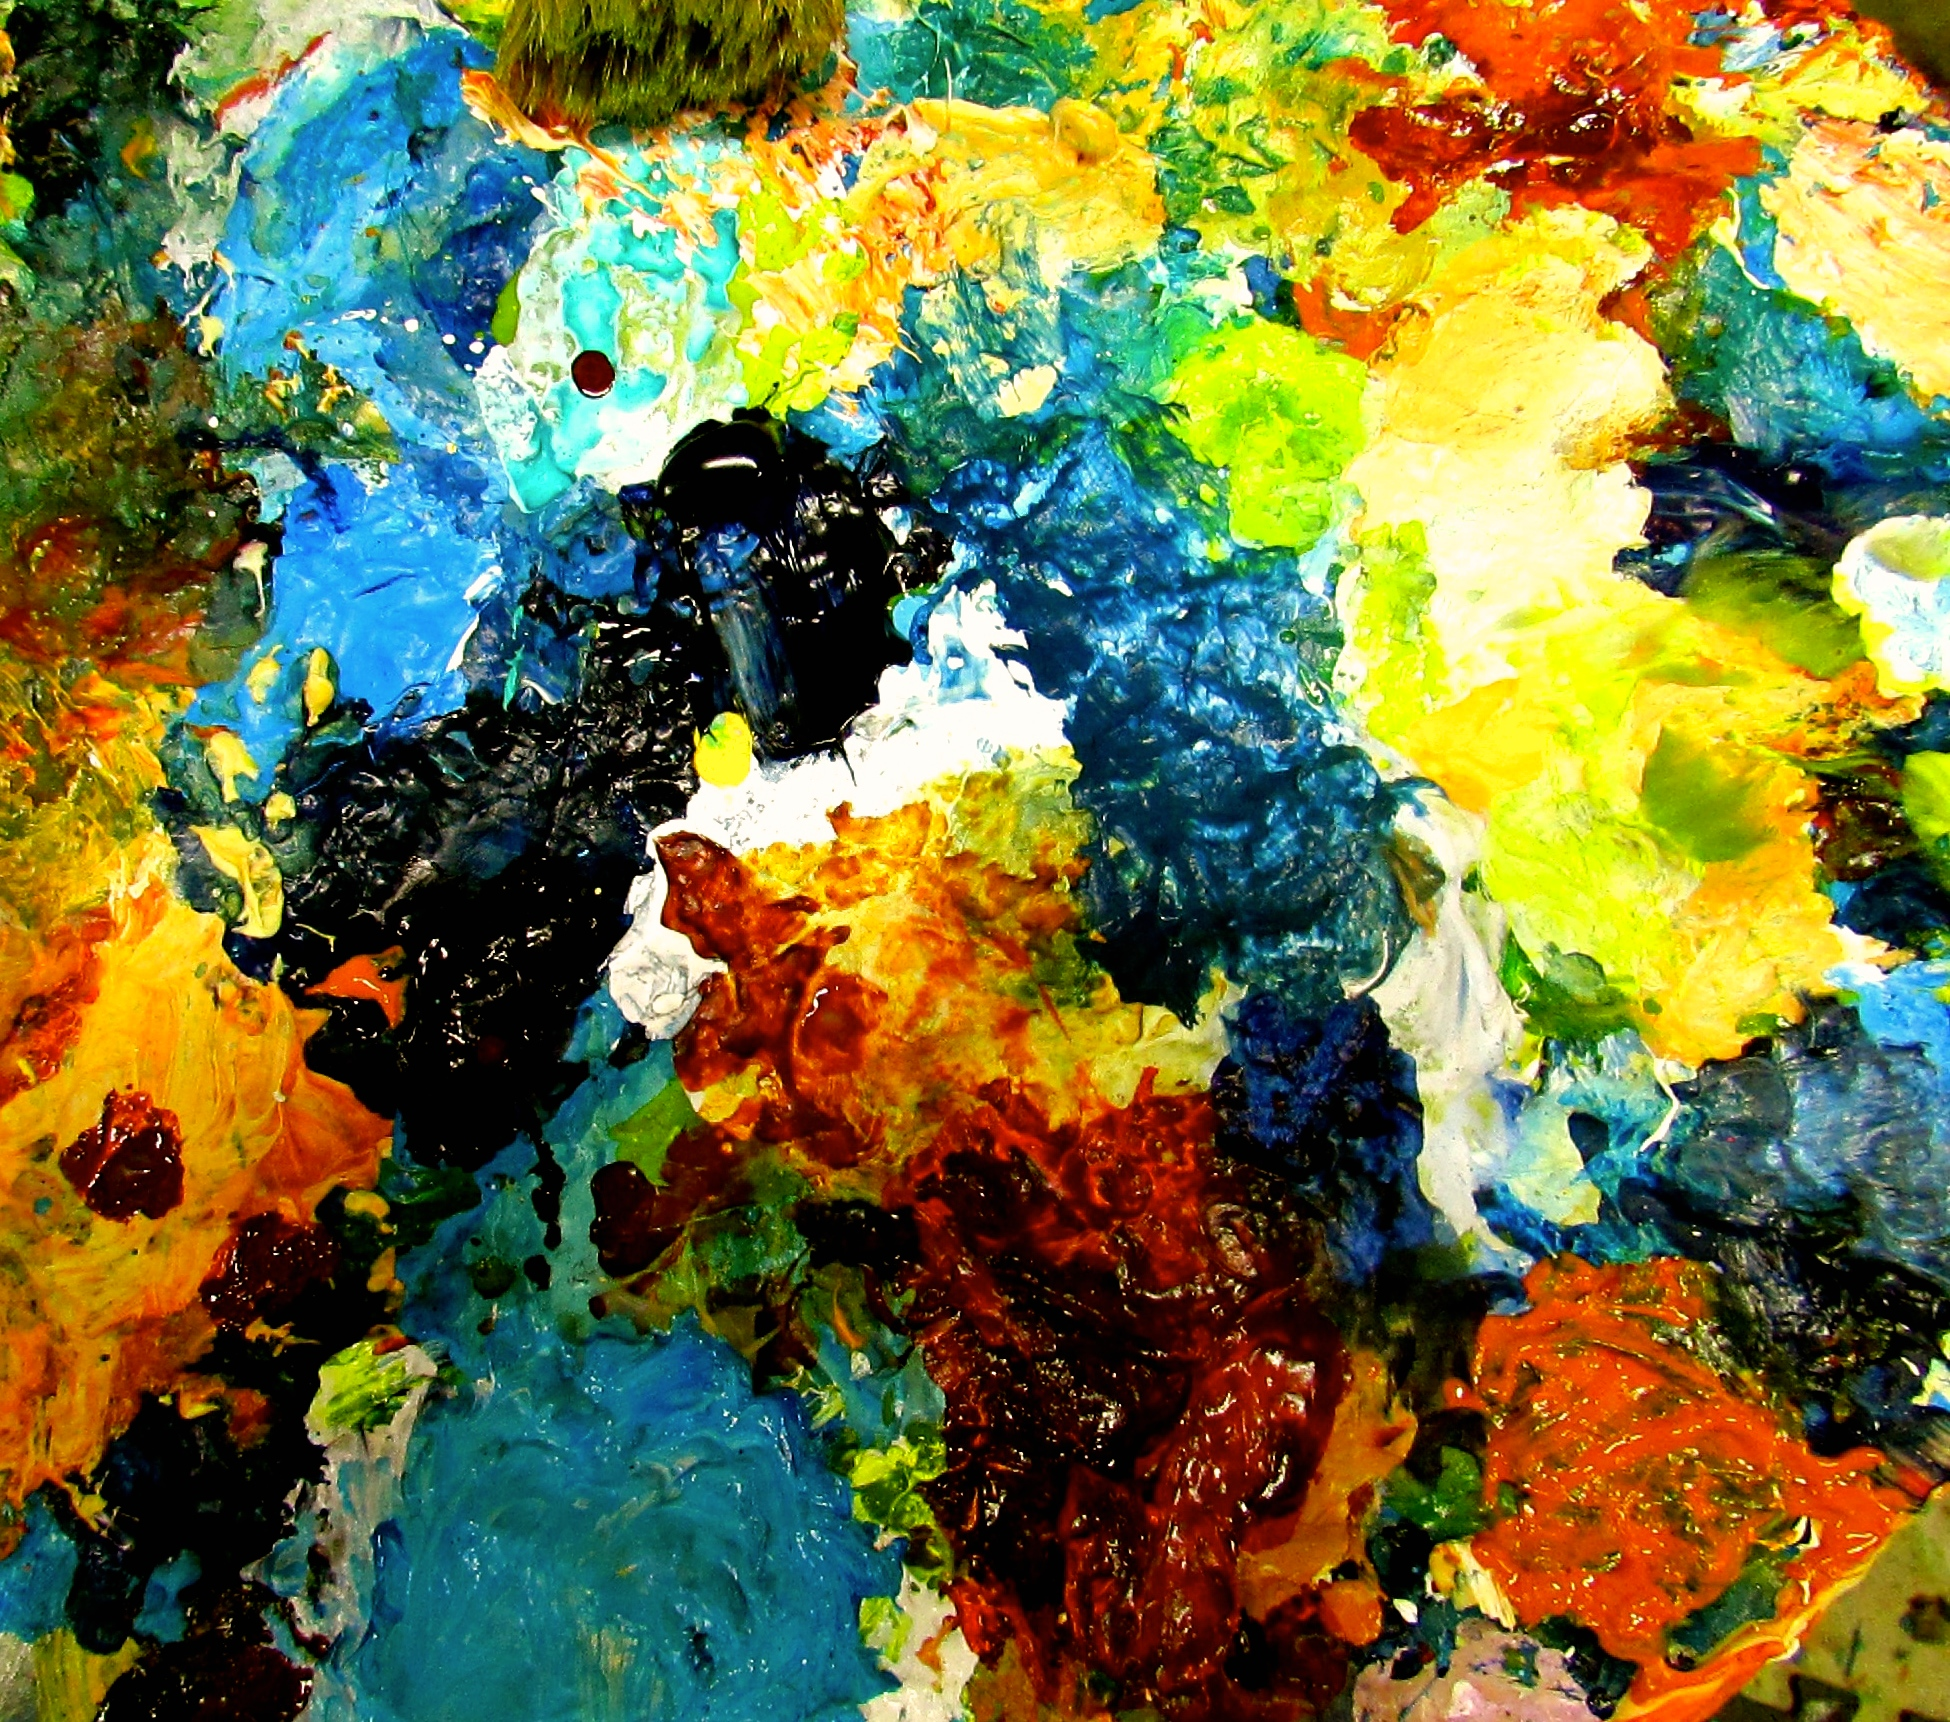 The beautiful swirls and layers of colour on the palette of a working artist